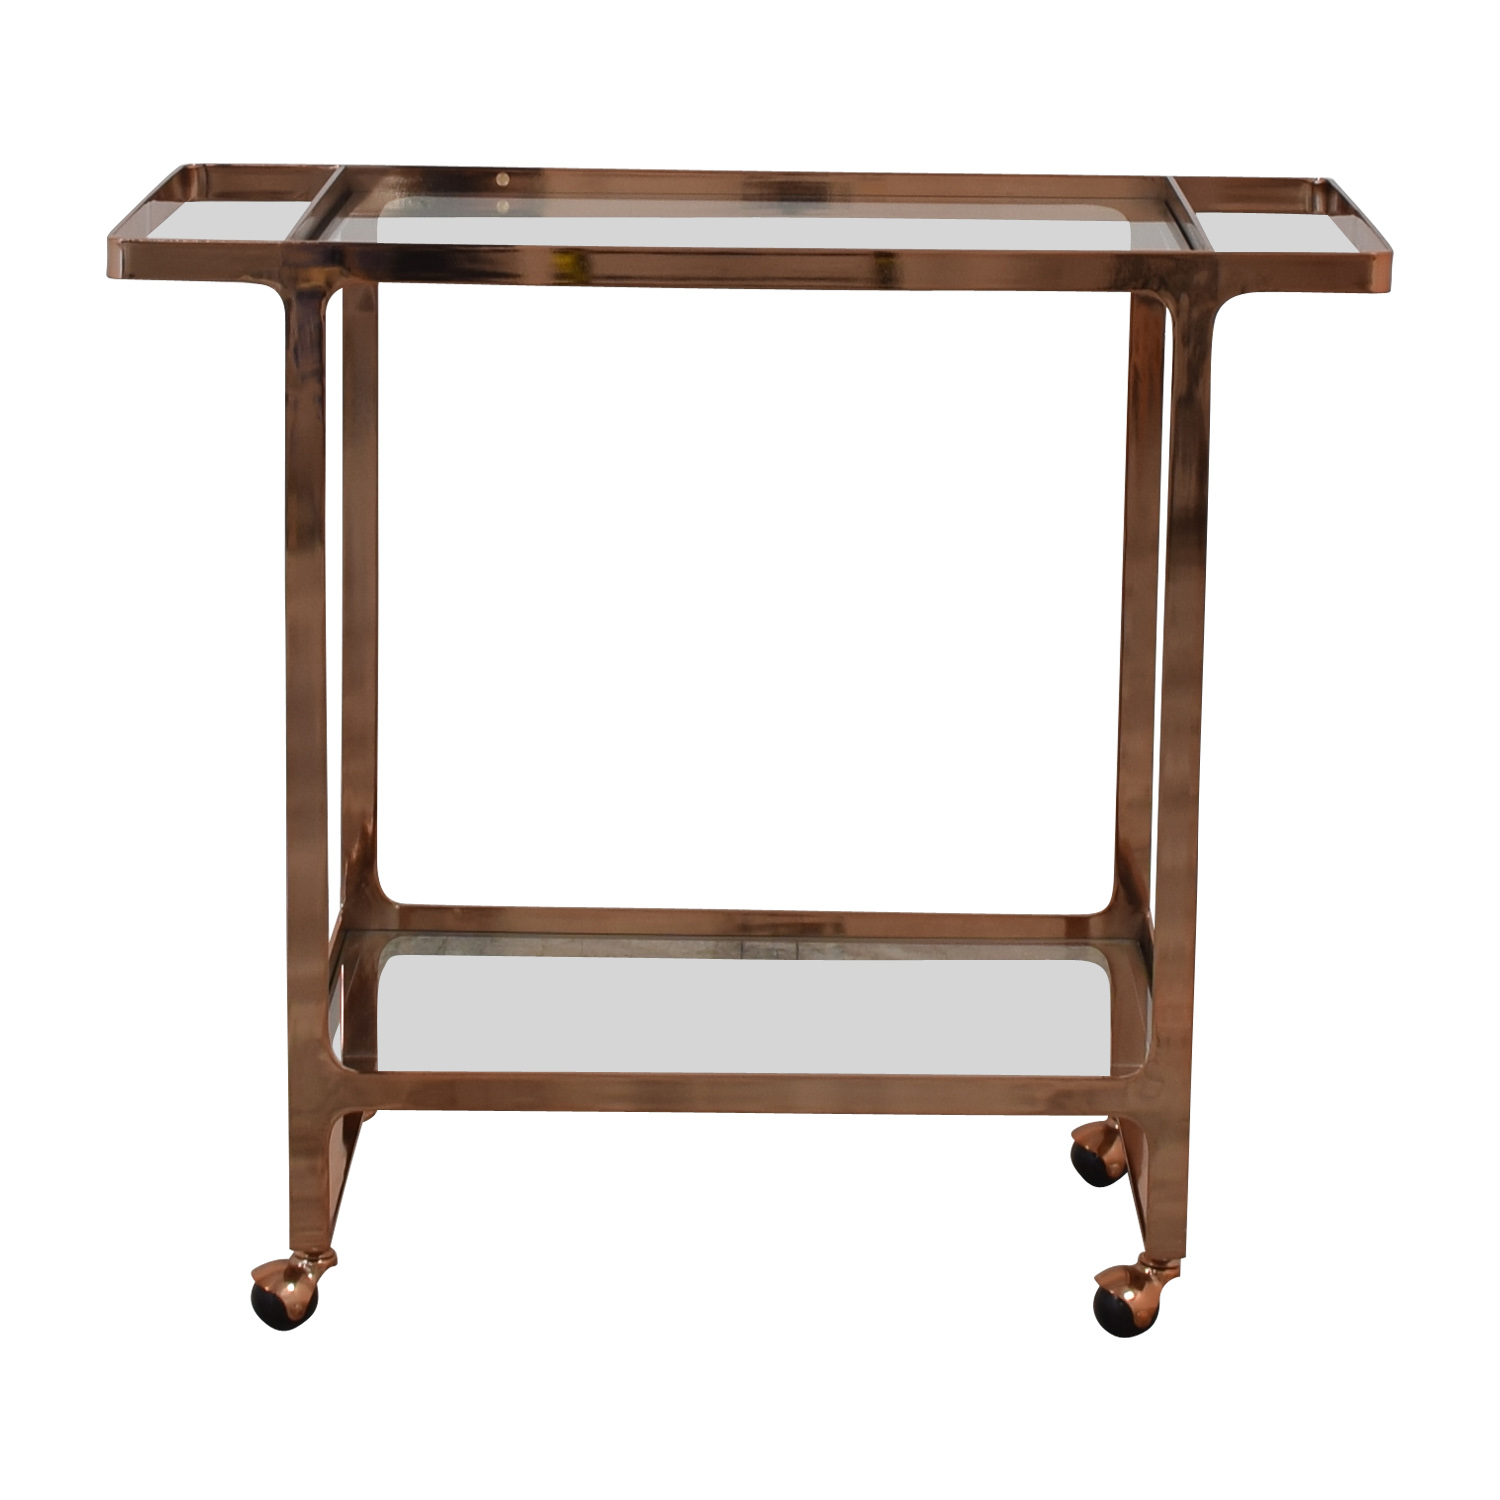 shop CB2 Dolce Vita Bar Cart CB2 Tables